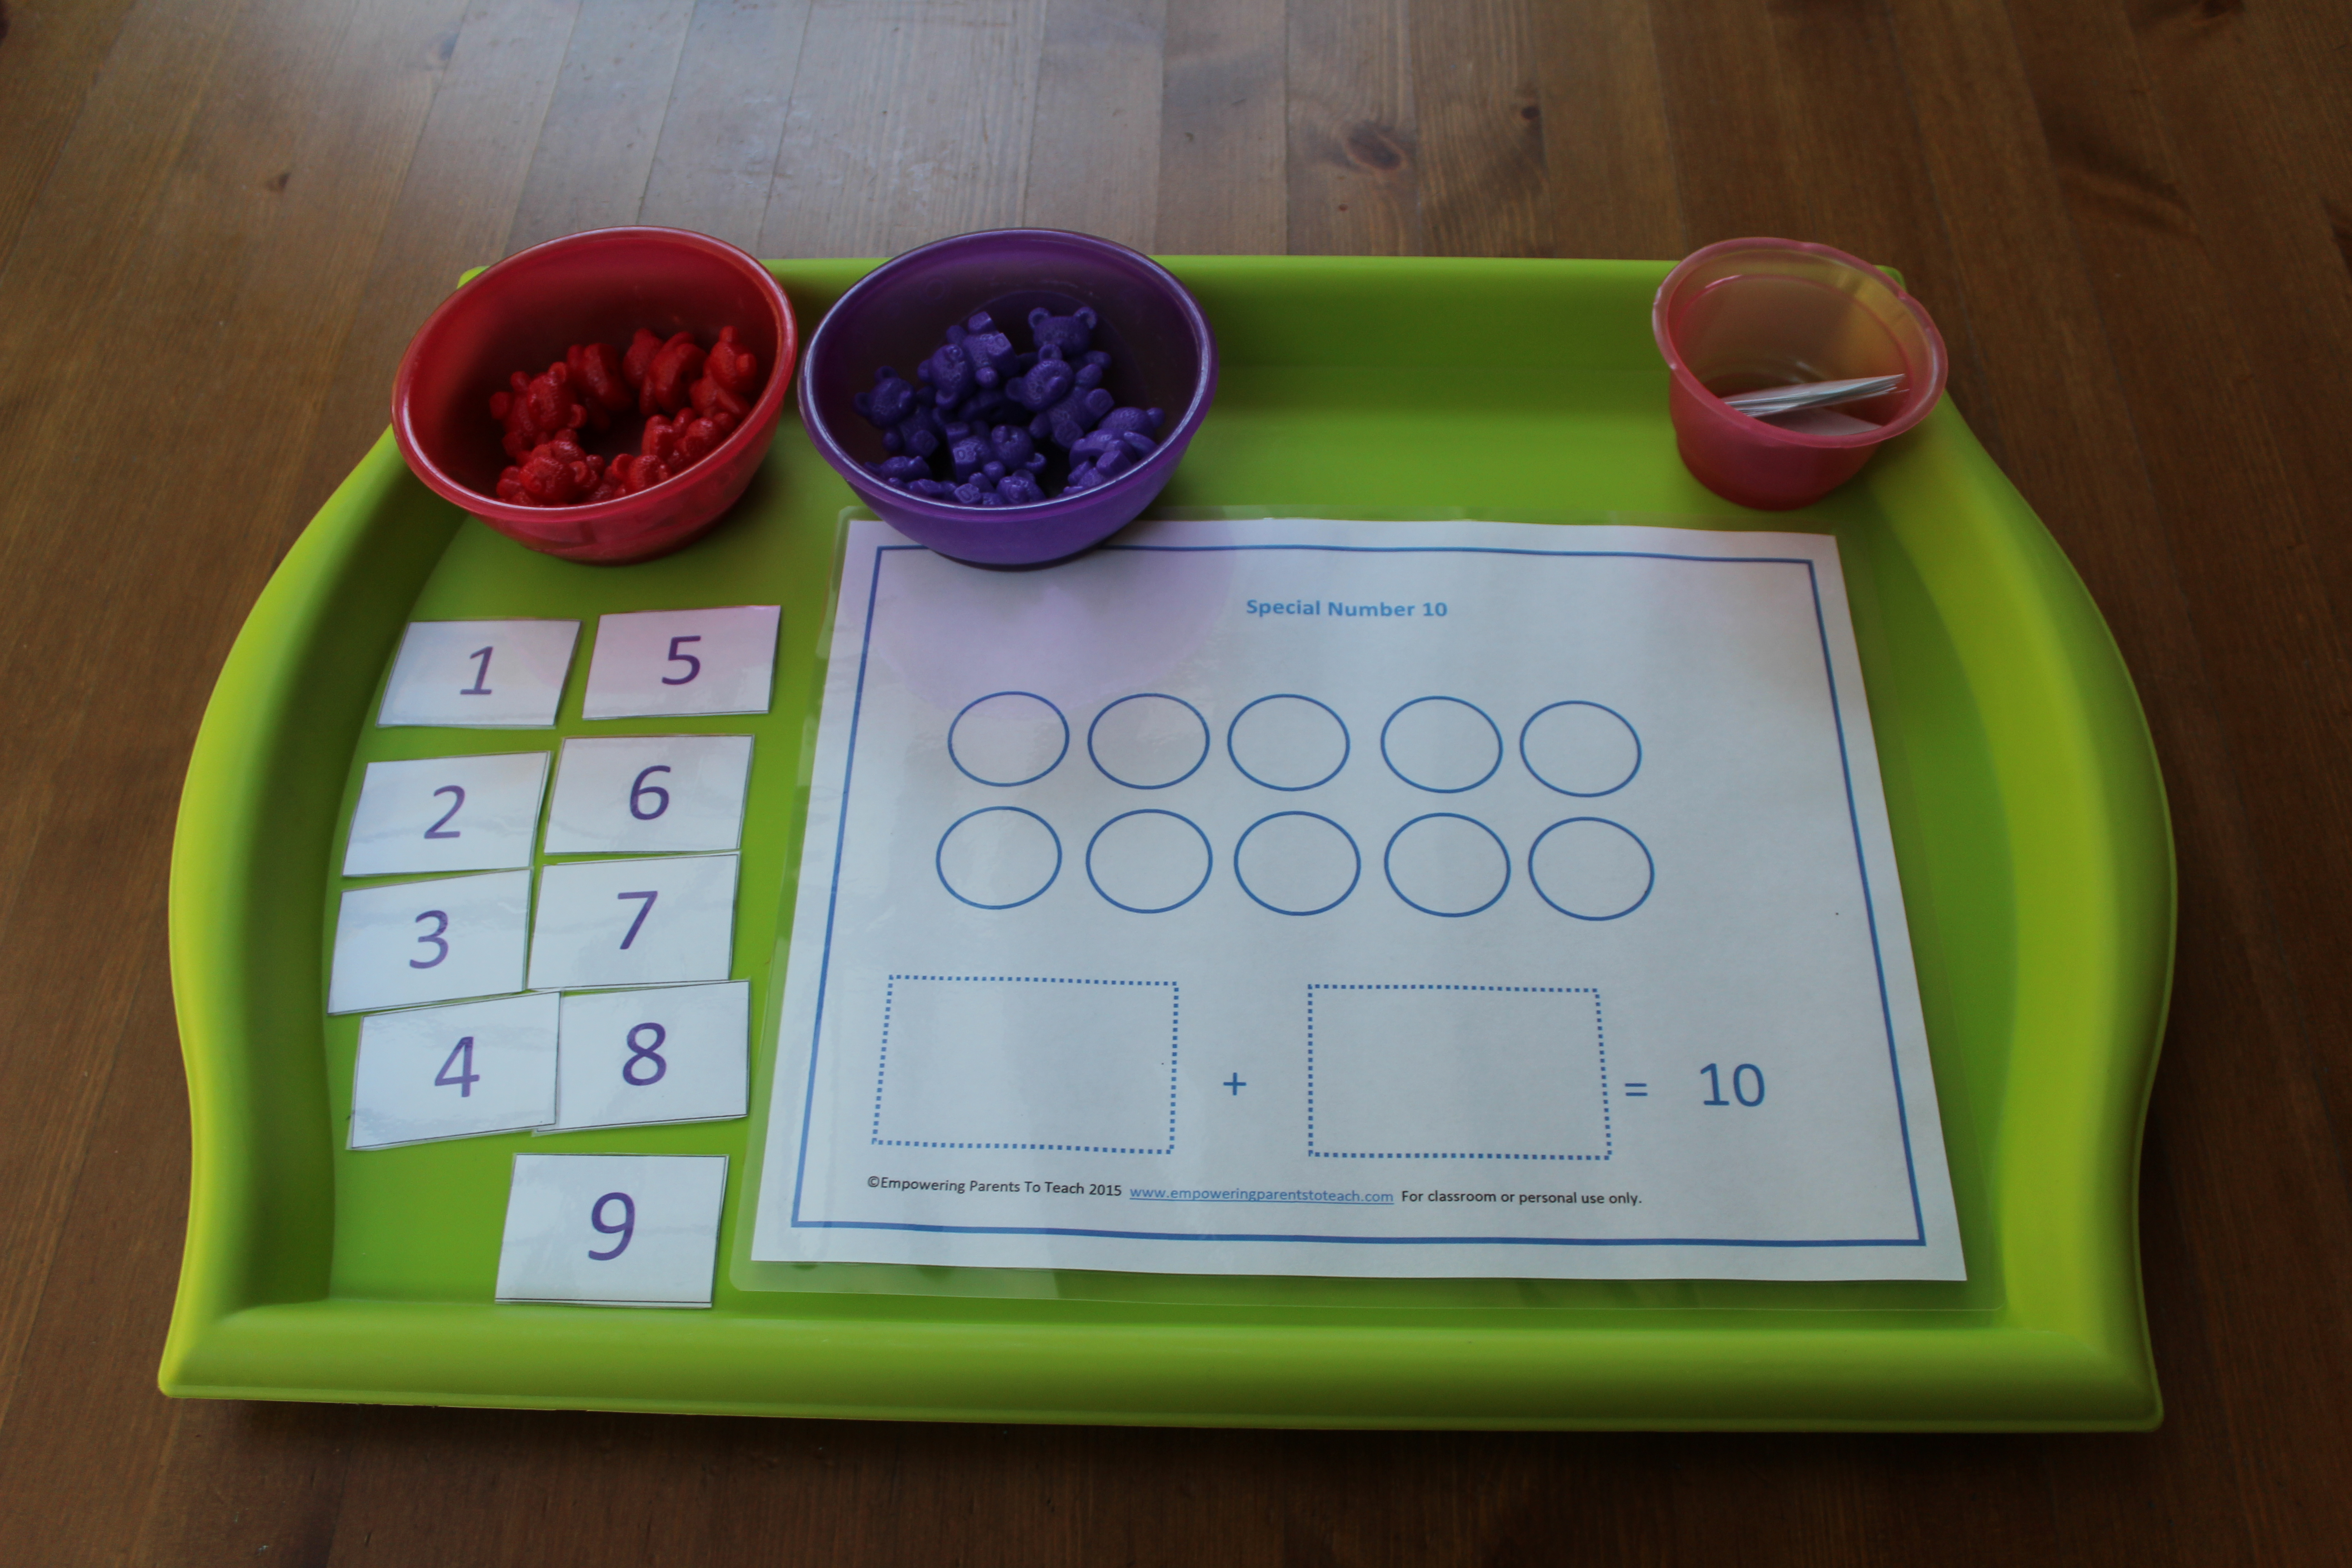 Hands-on Math: Make Ten (with free printable materials) - Empowering ...